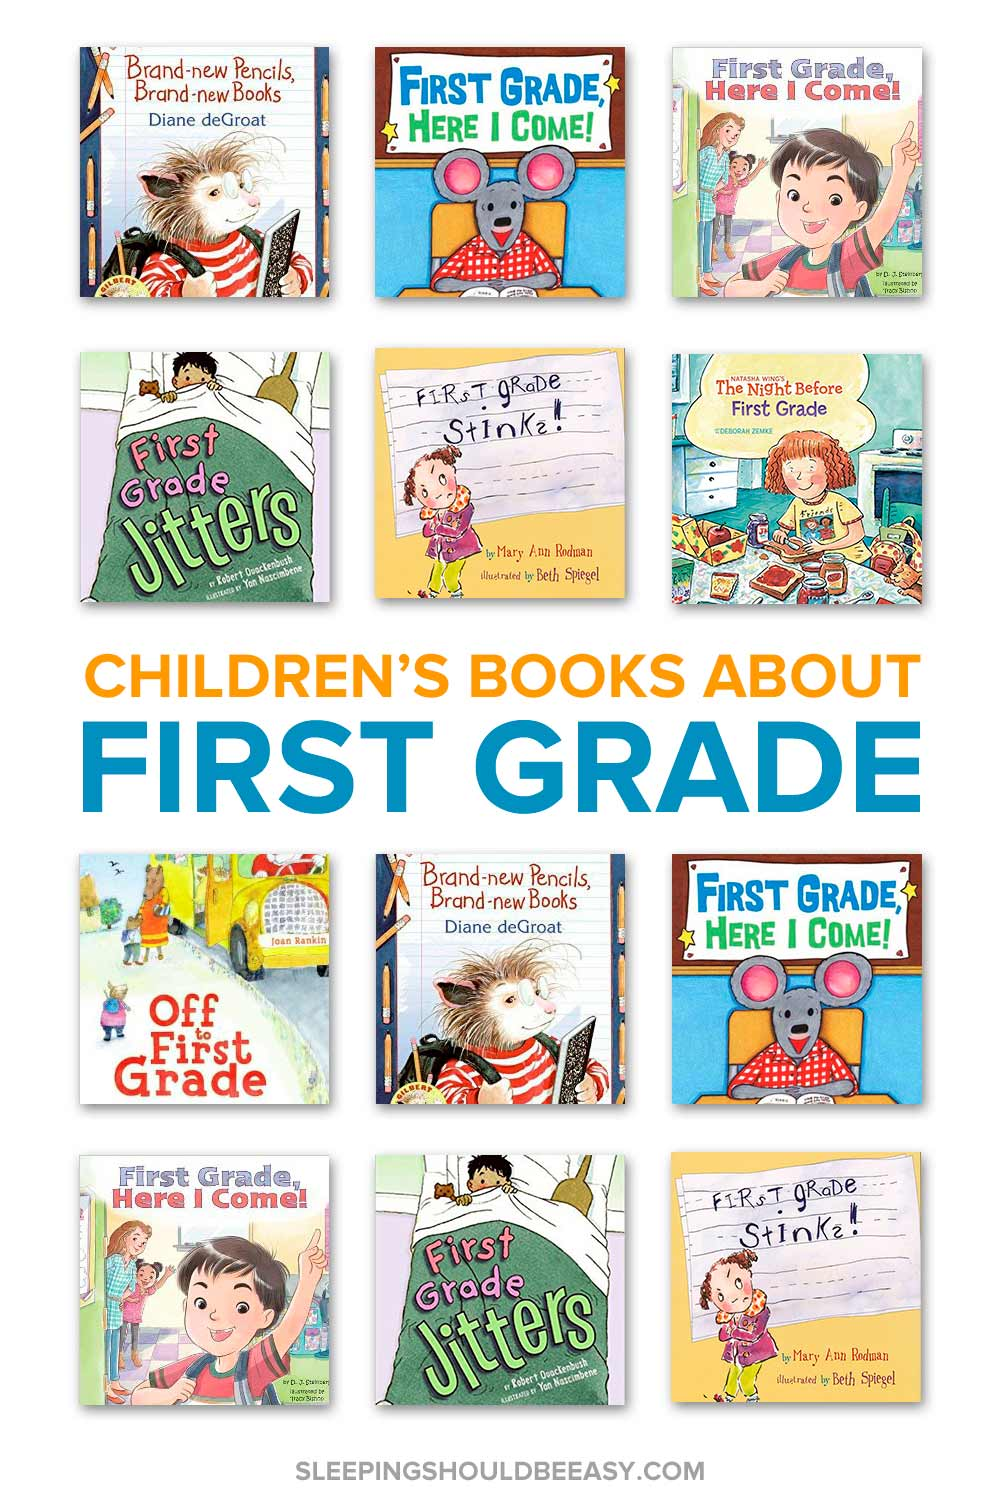 A collection of children's books about first grade